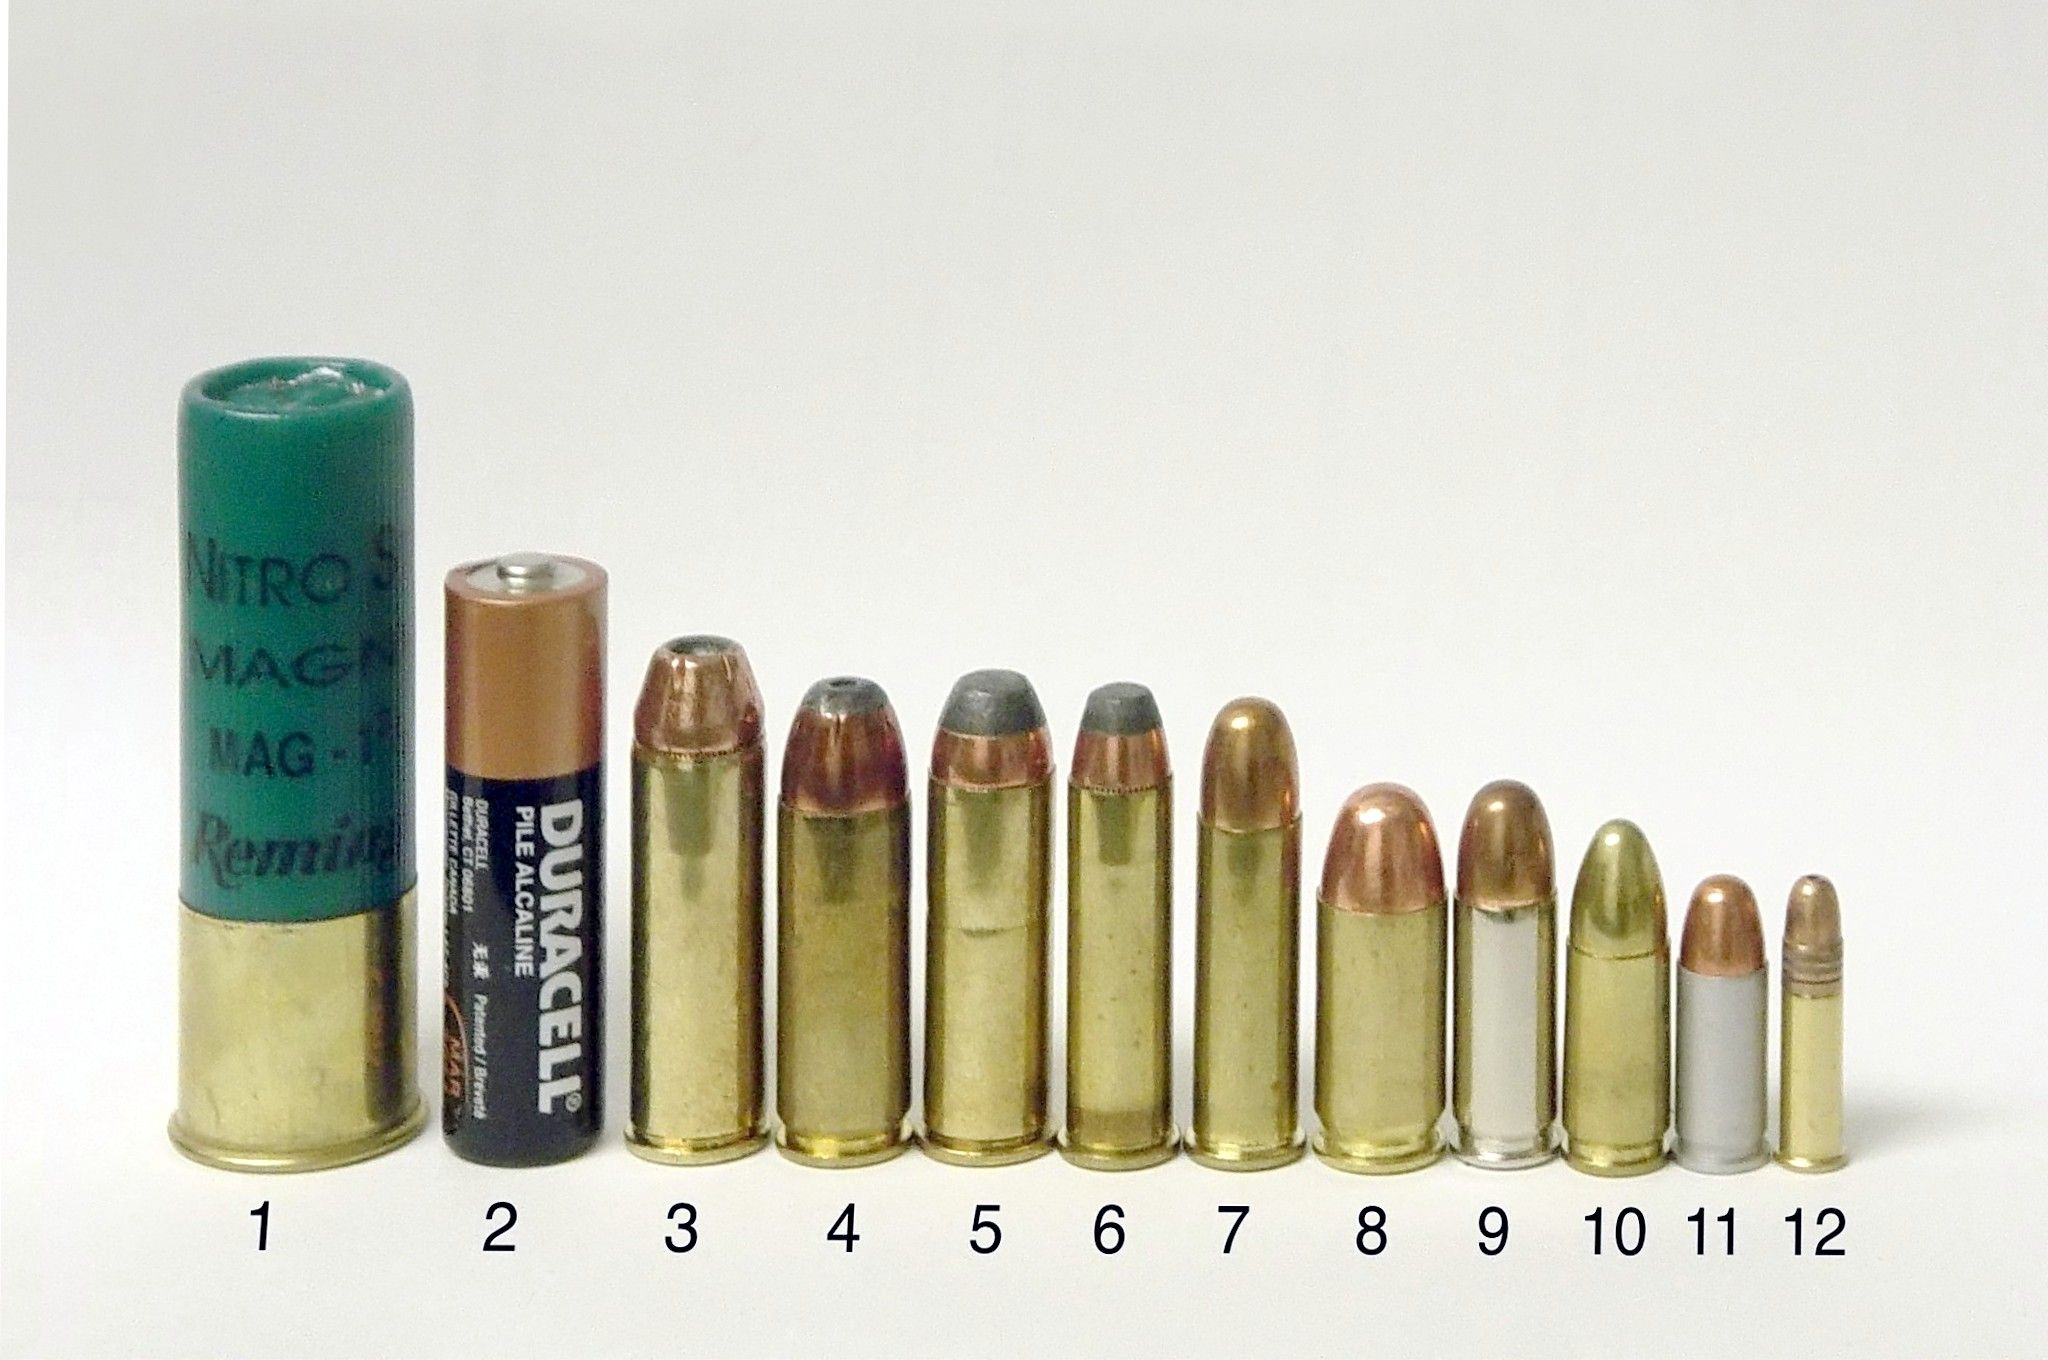 Comparison of handgun rounds (Left to right): 3